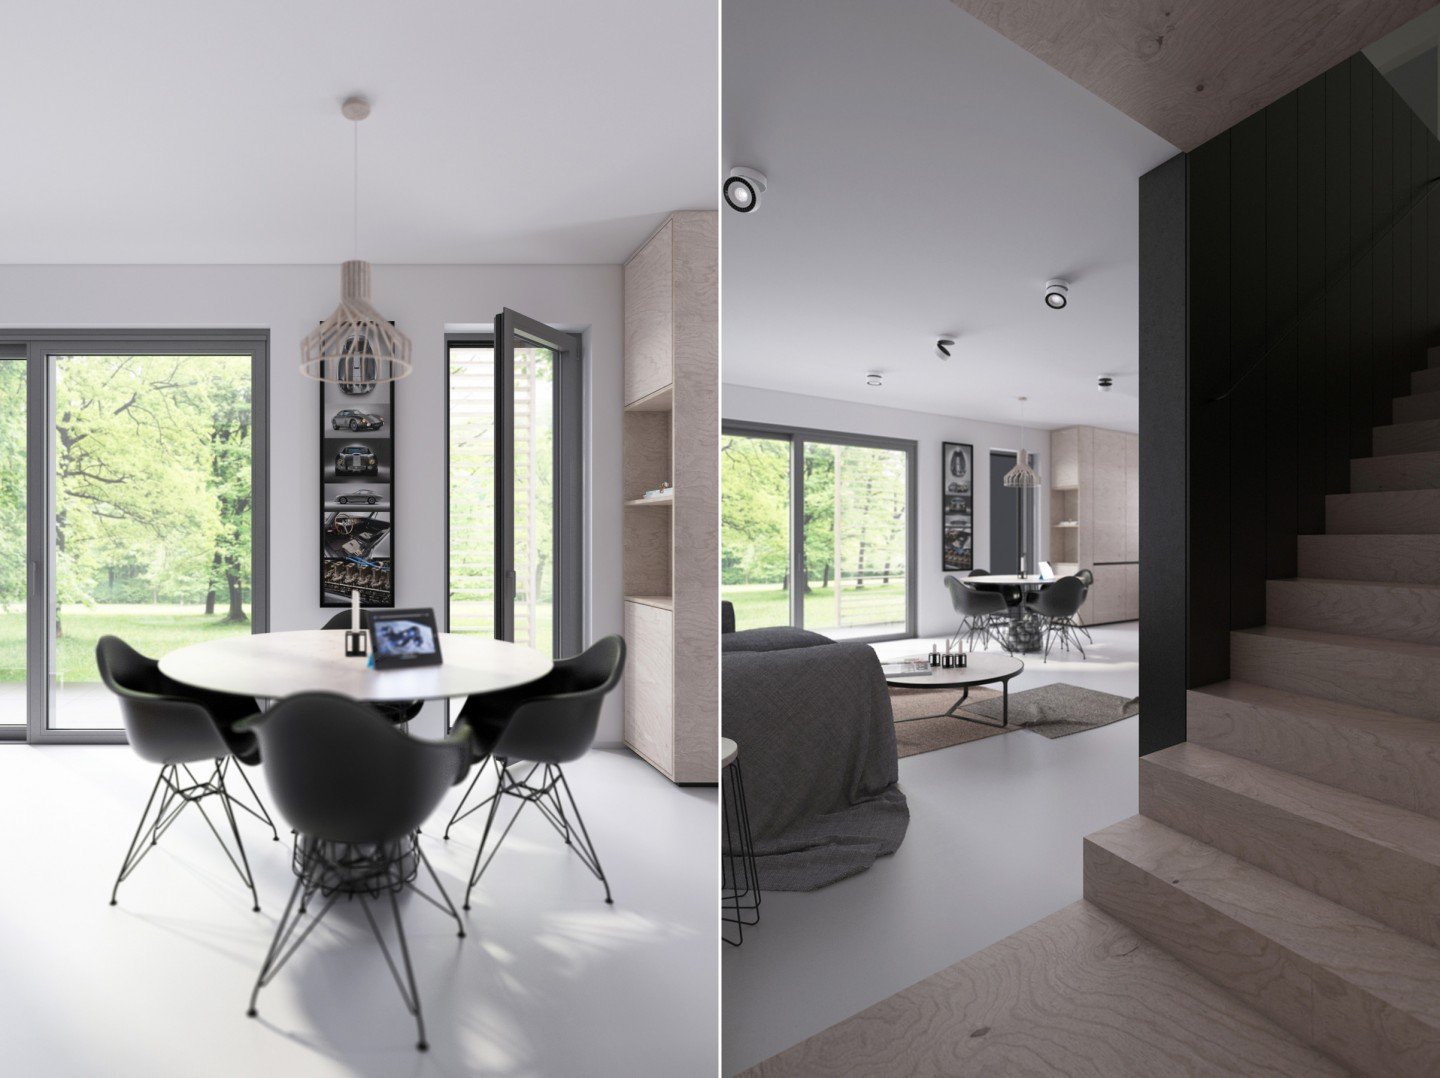 2 Open Plan Living And Dining Room Design With Sleek